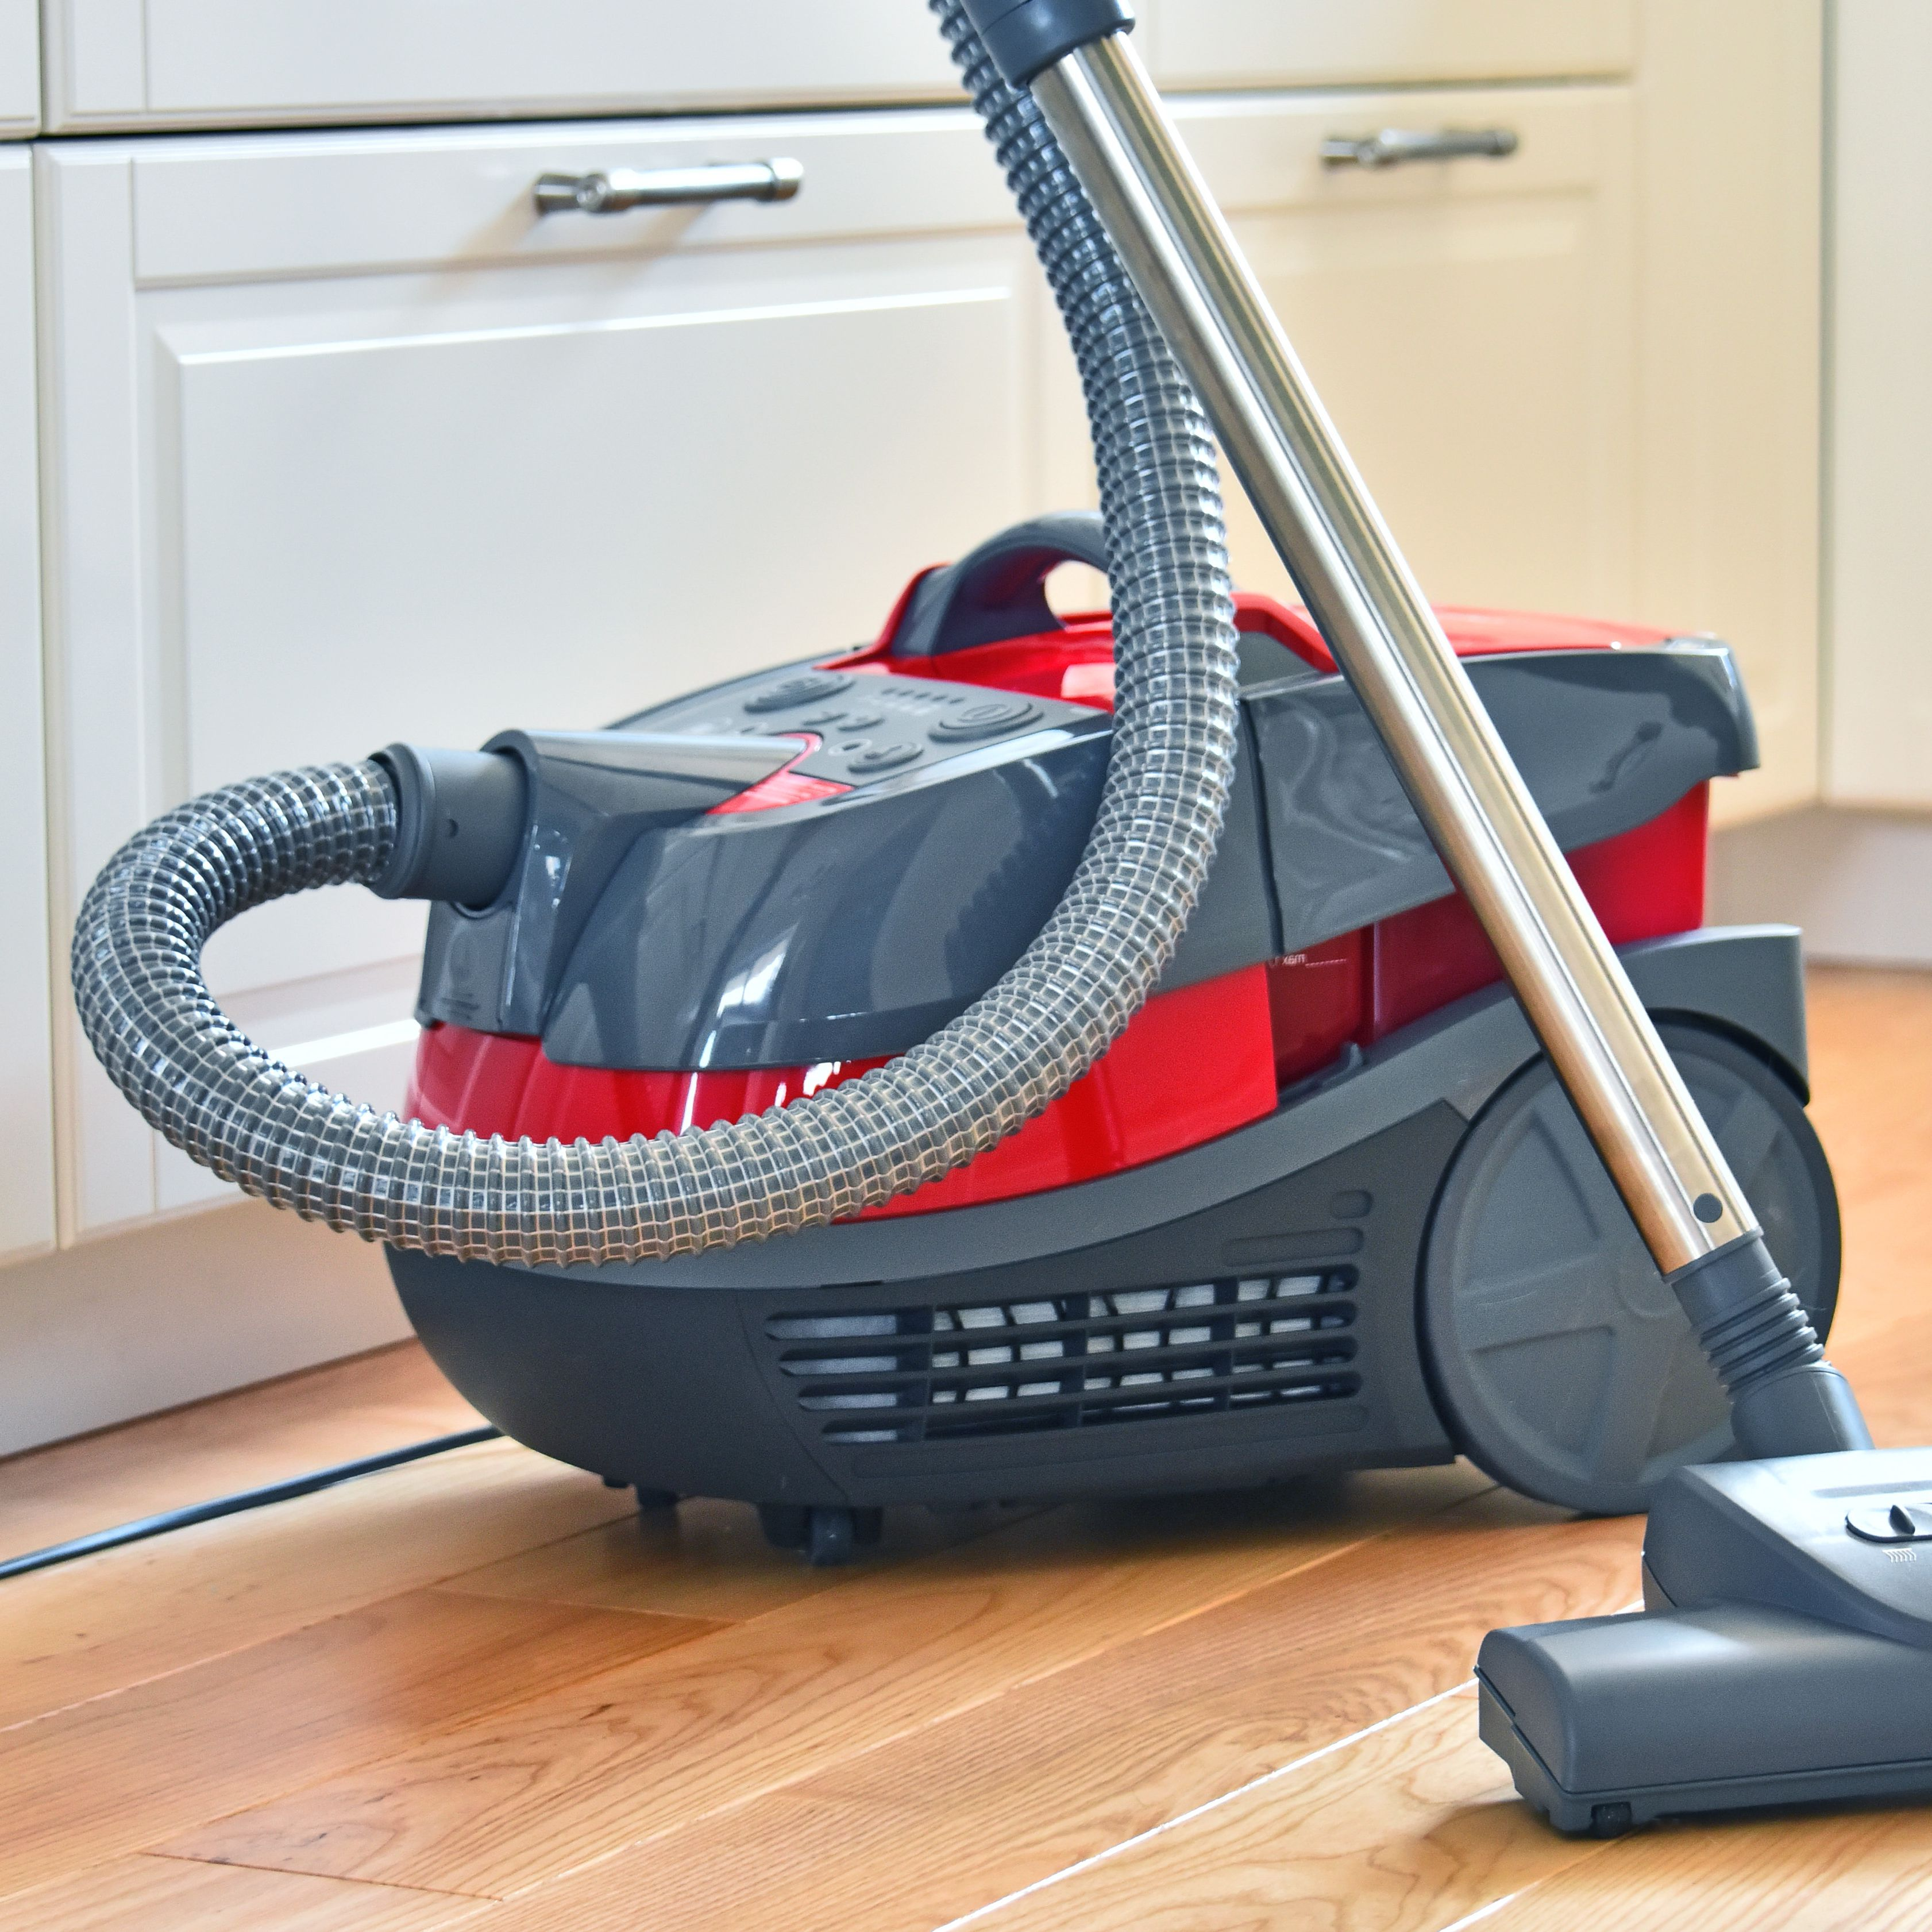 8 Surprising Uses for Your Vacuum Cleaner